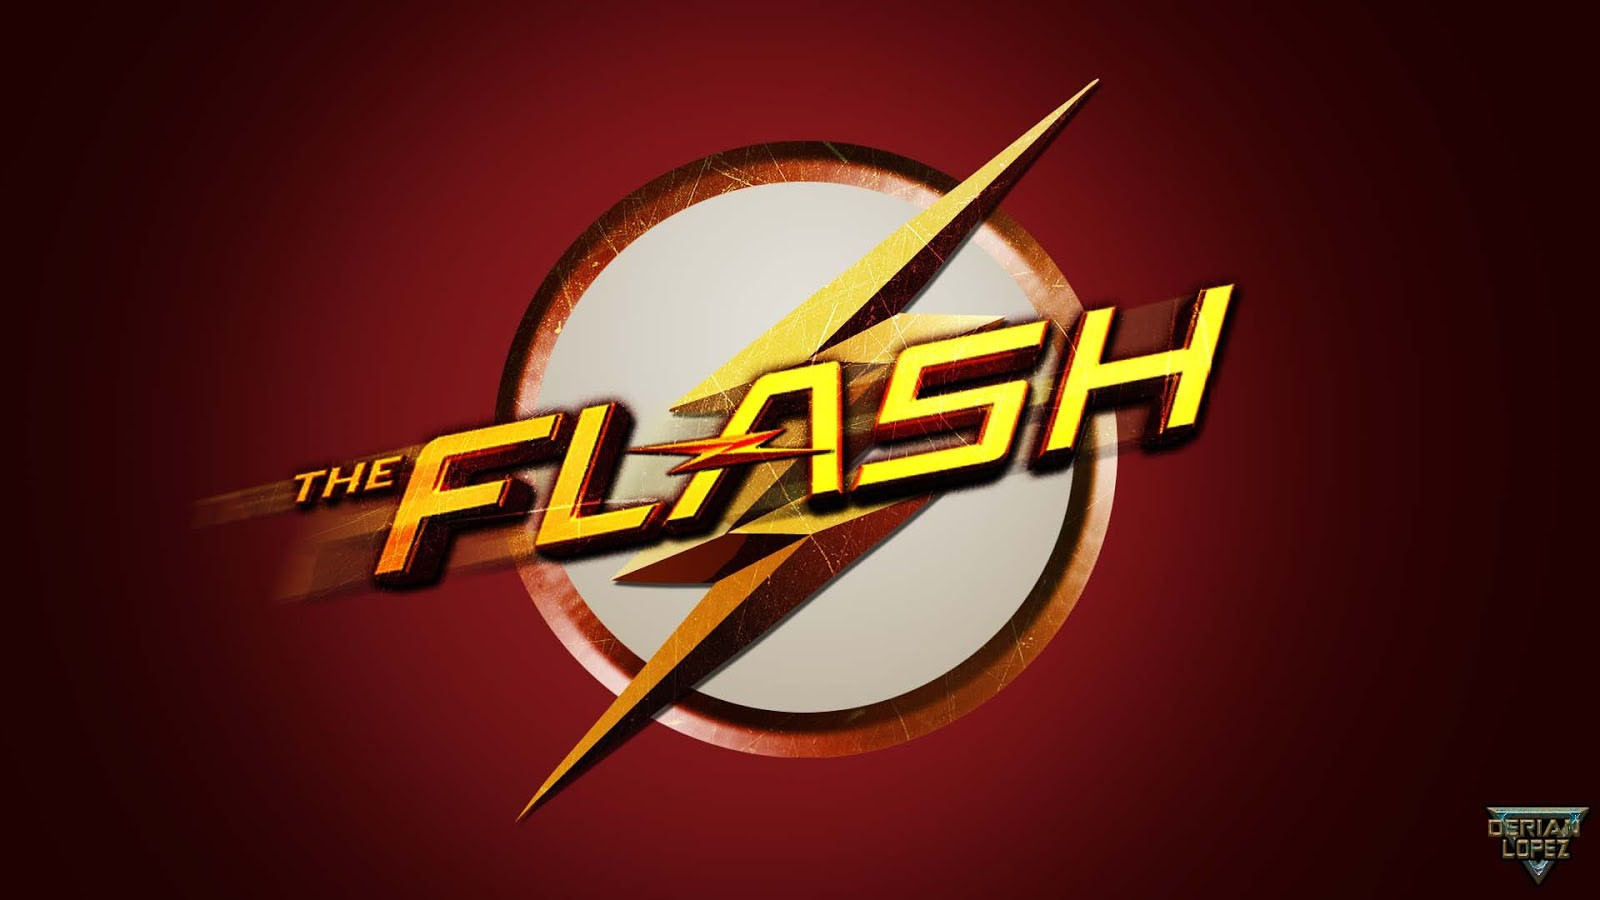 Free Download Car Wallpapers For Mobile 9 The Flash Logo Hd Wallpapers Free Download